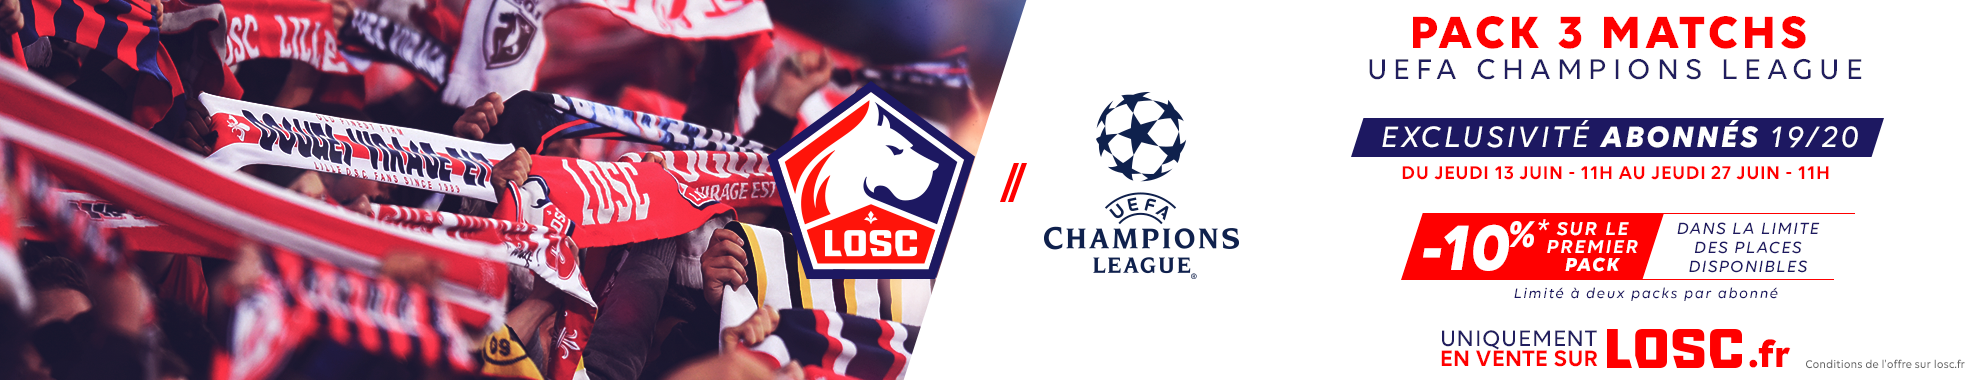 Carrousel_Billetterie_[LOSC_Champ'sLeague]_focusABONNES_1980x380-V2.png